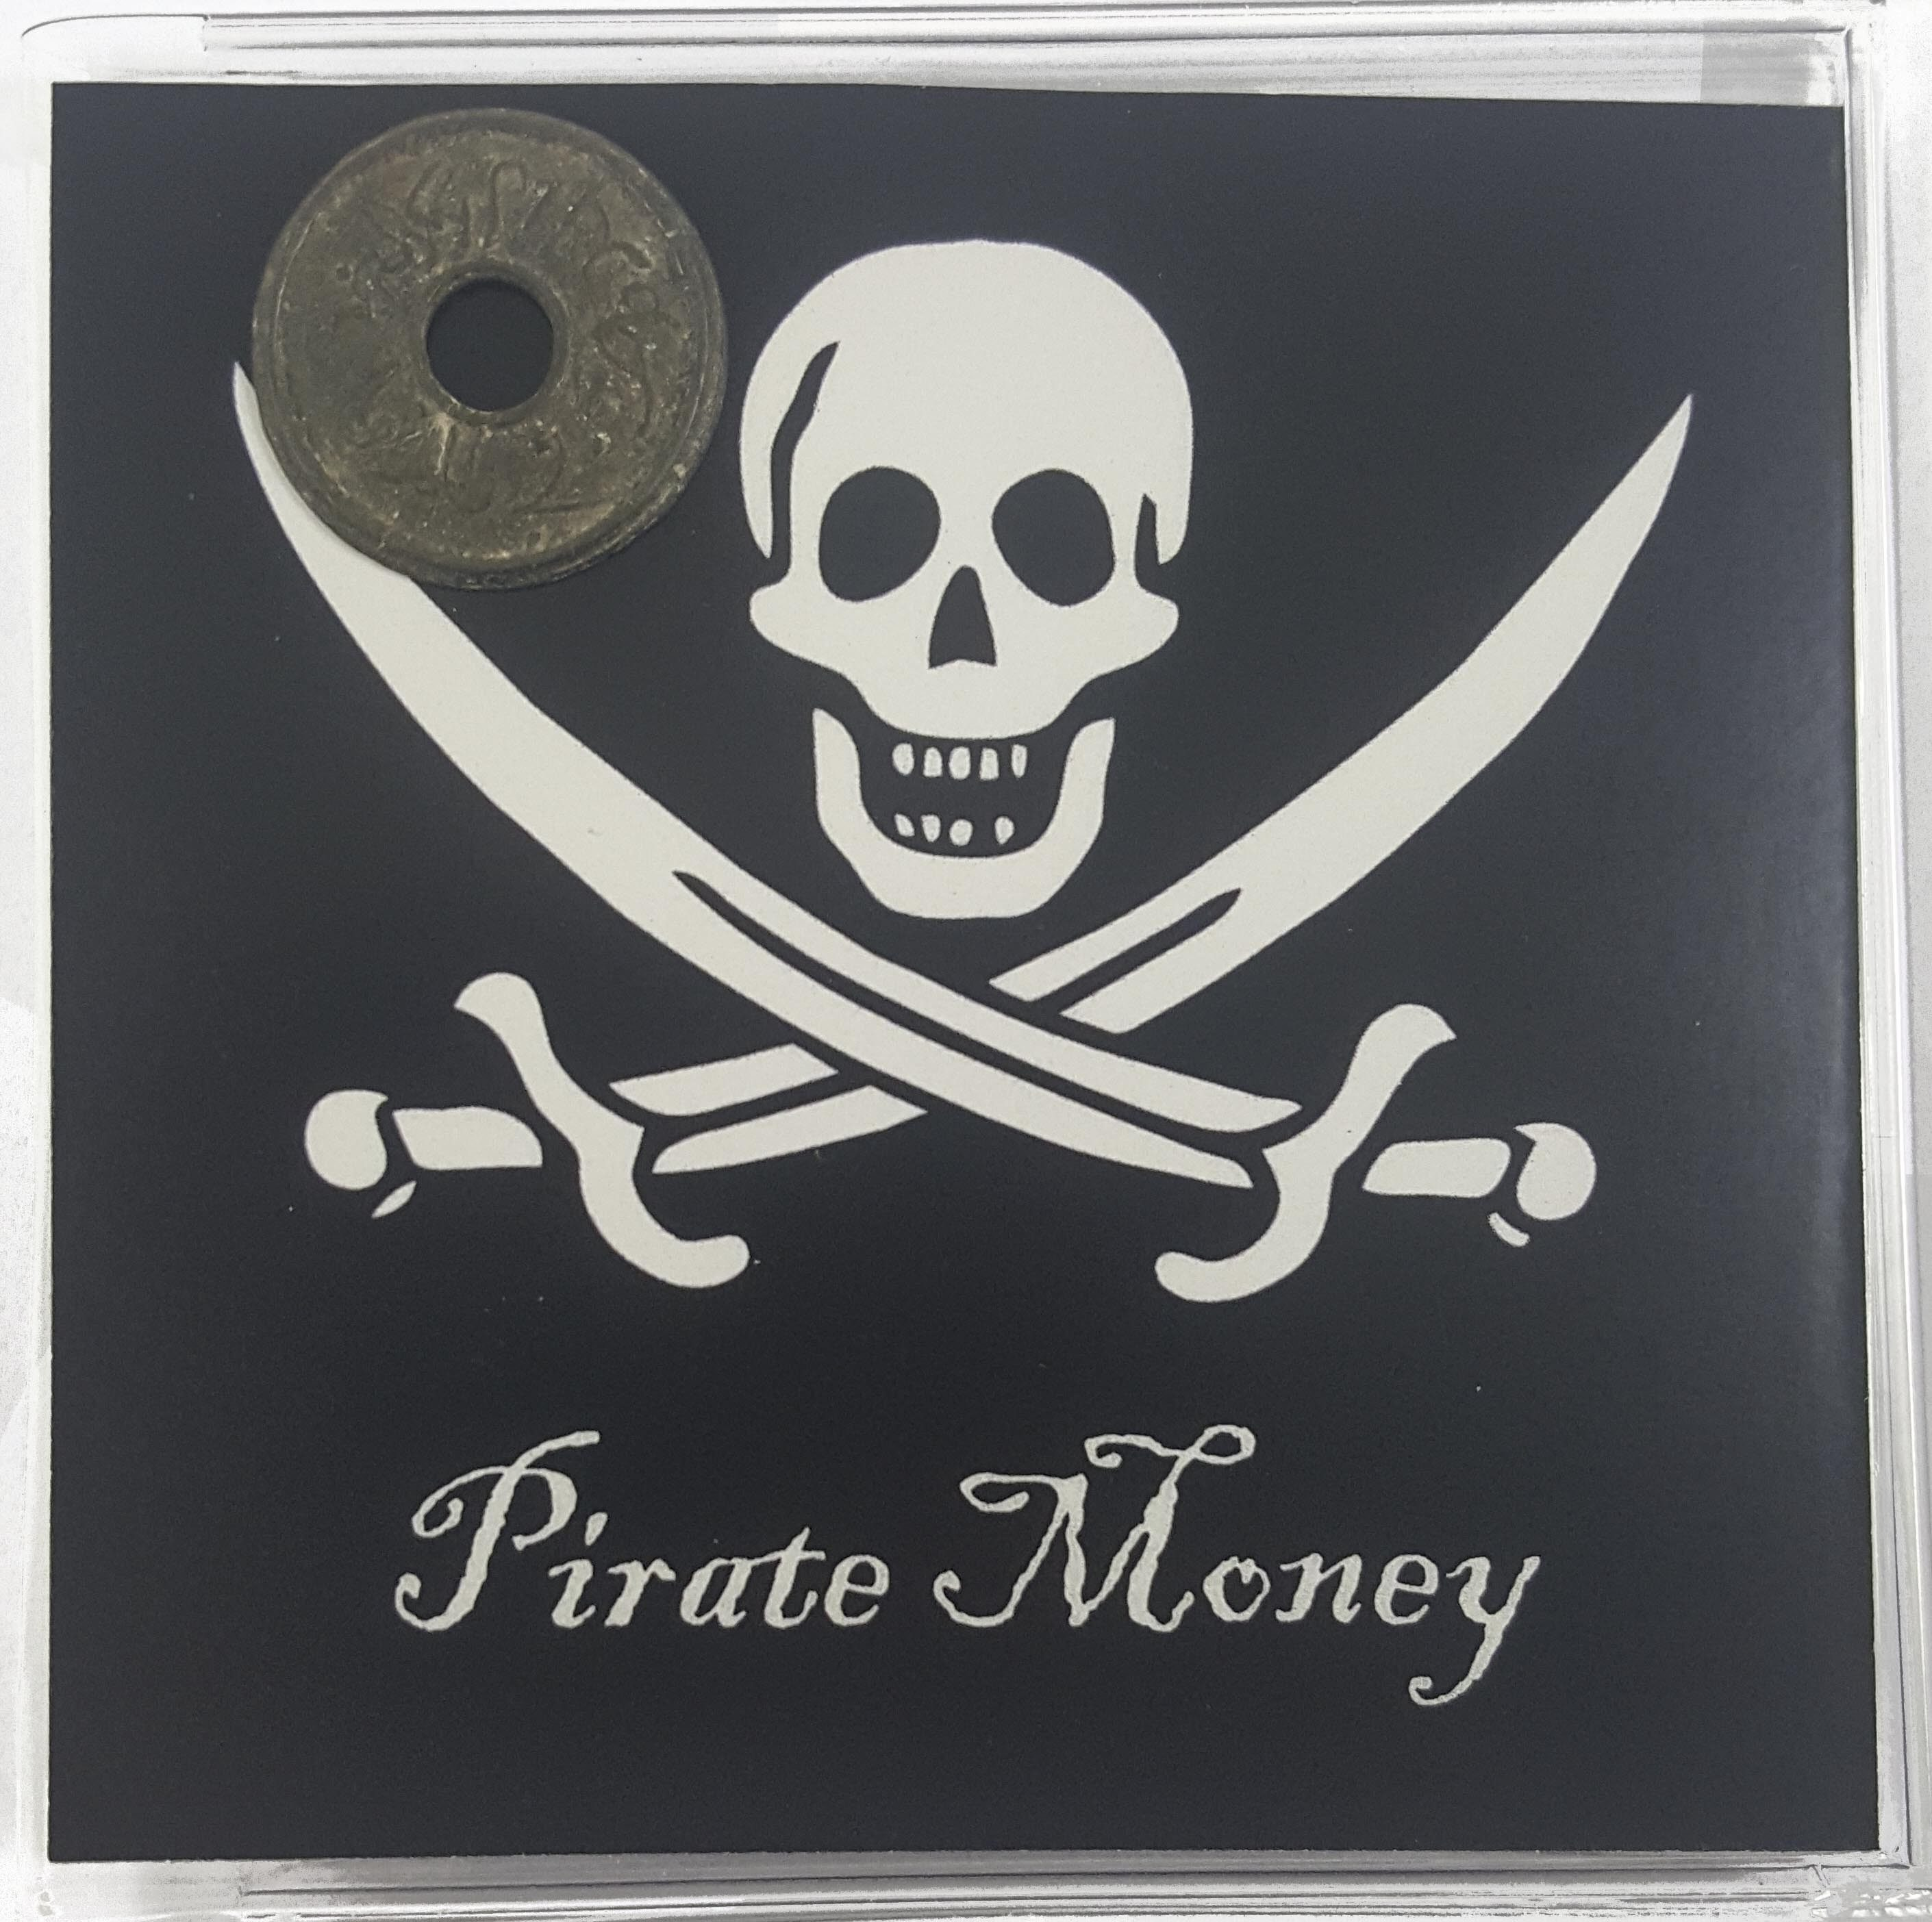 PIRATEMINI